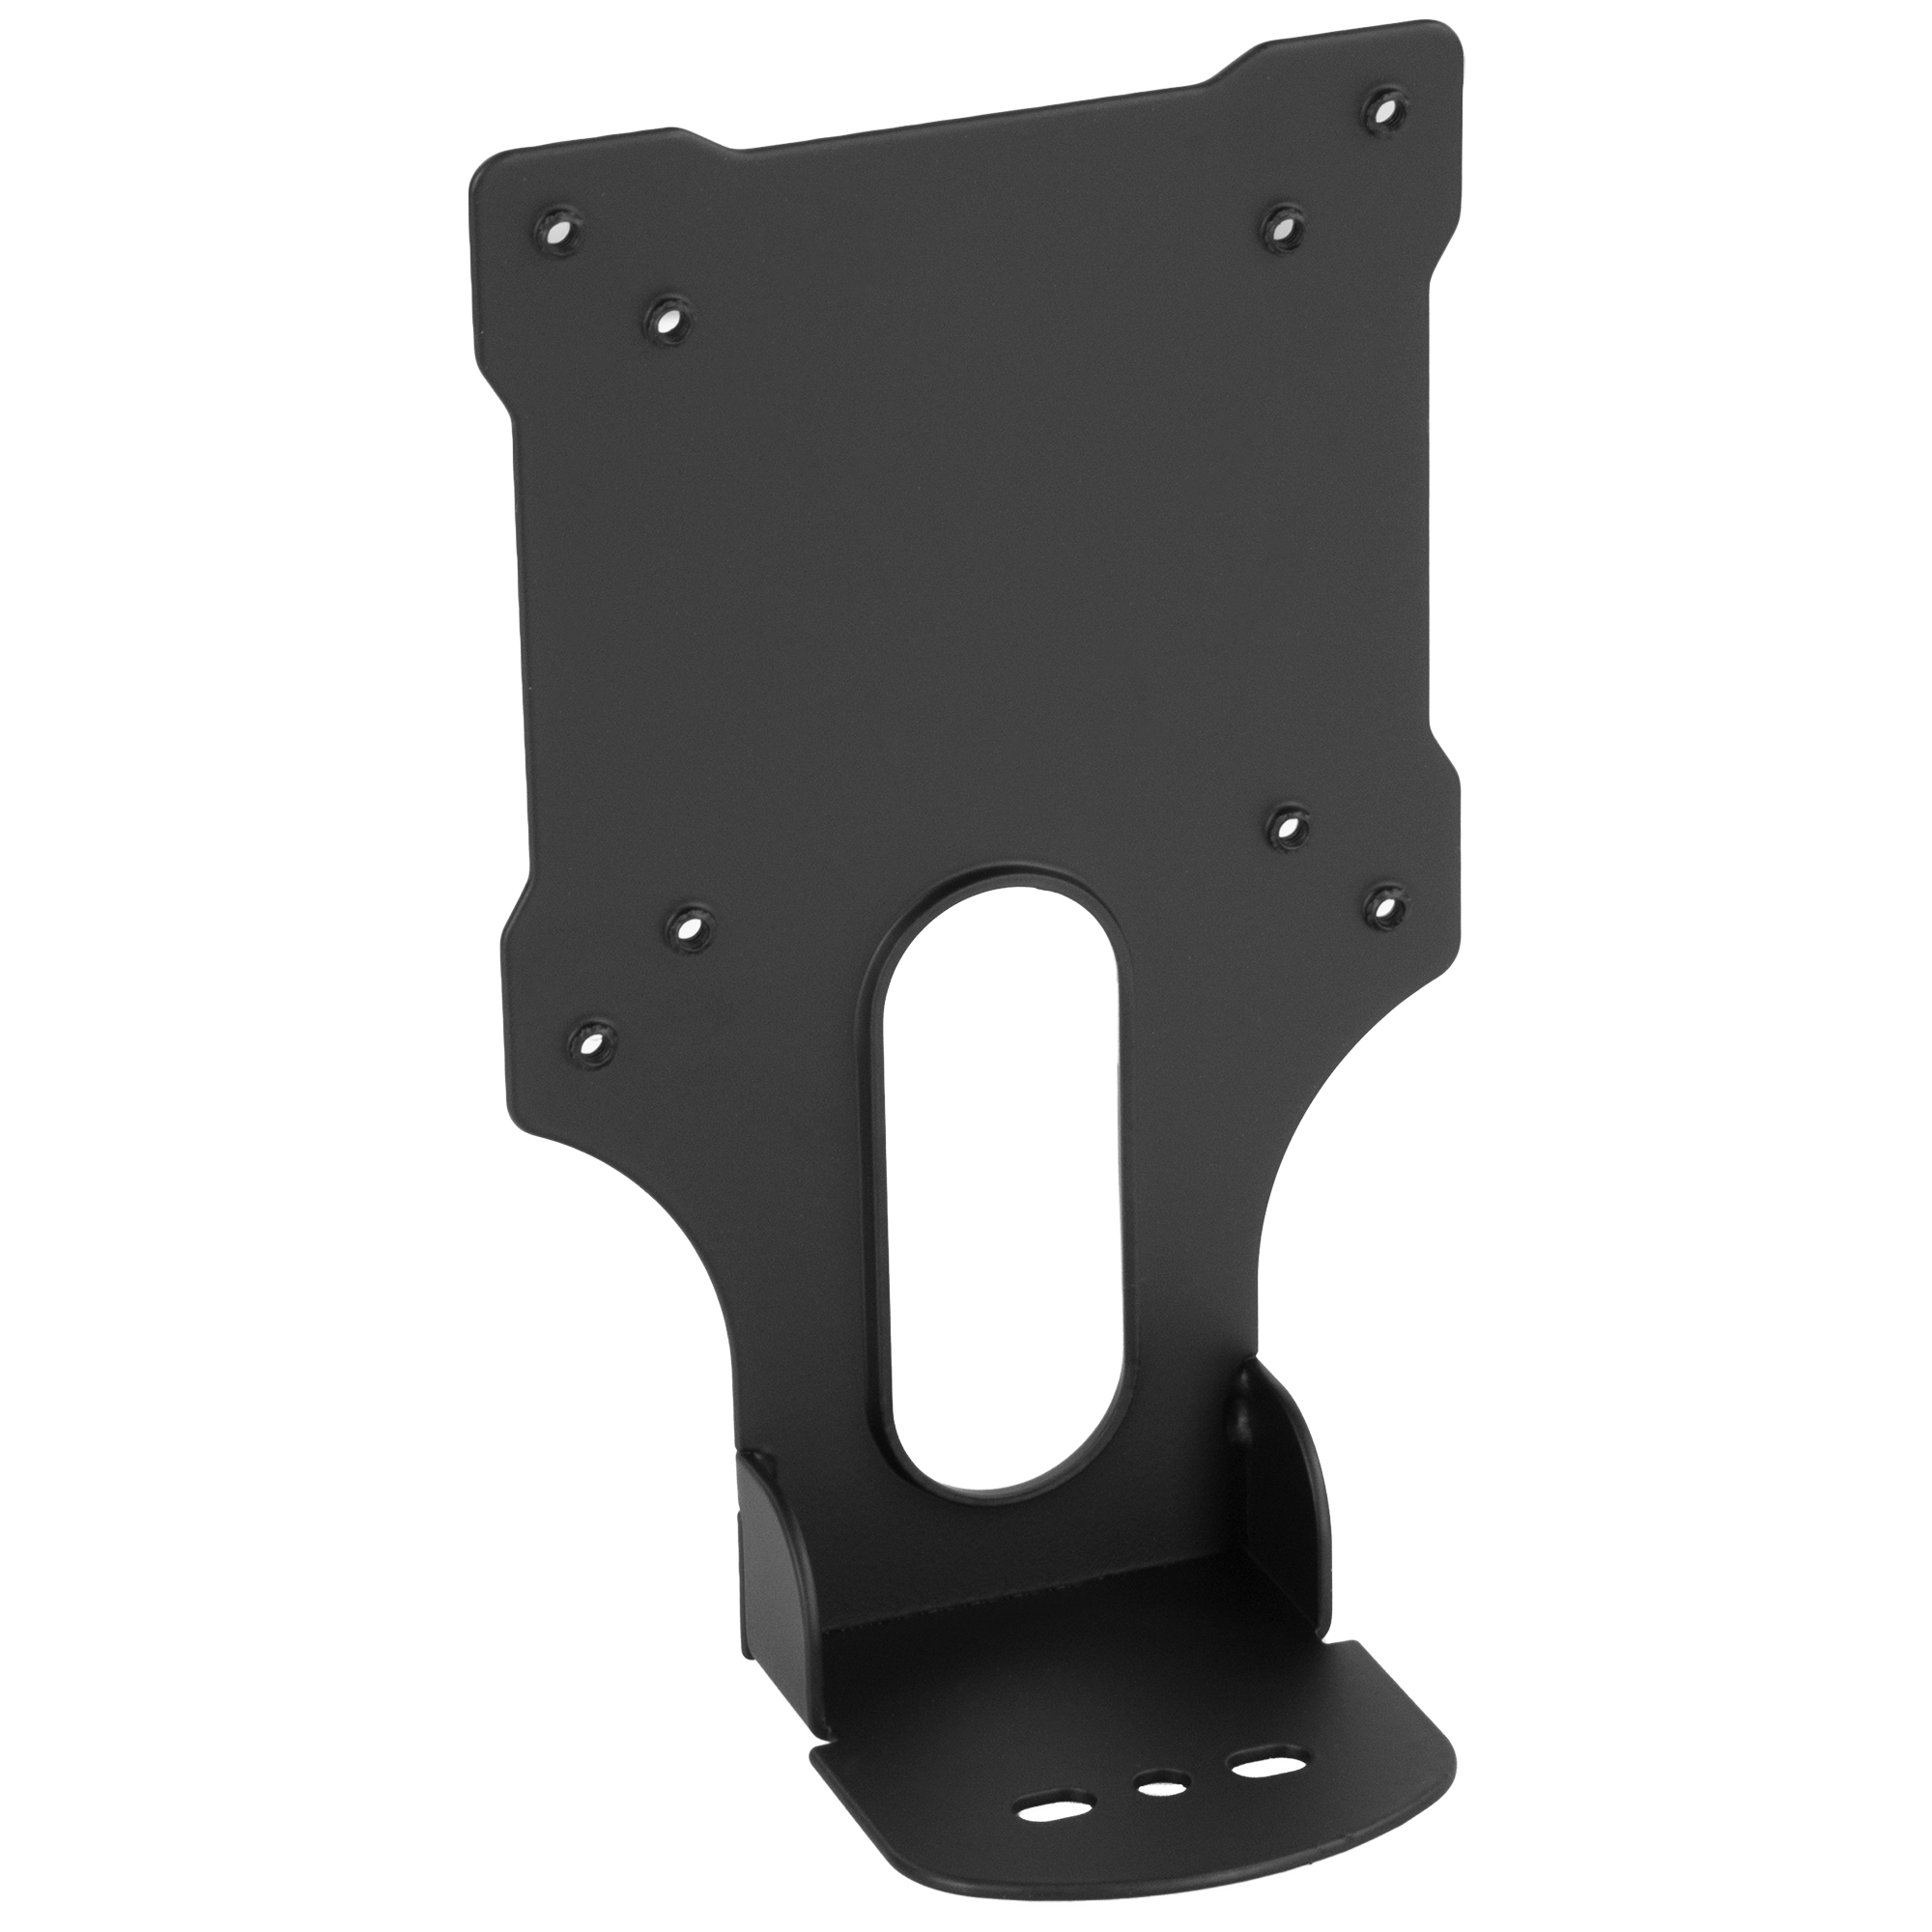 VIVO Quick Attach VESA Adapter Plate Bracket Designed for Acer Monitors